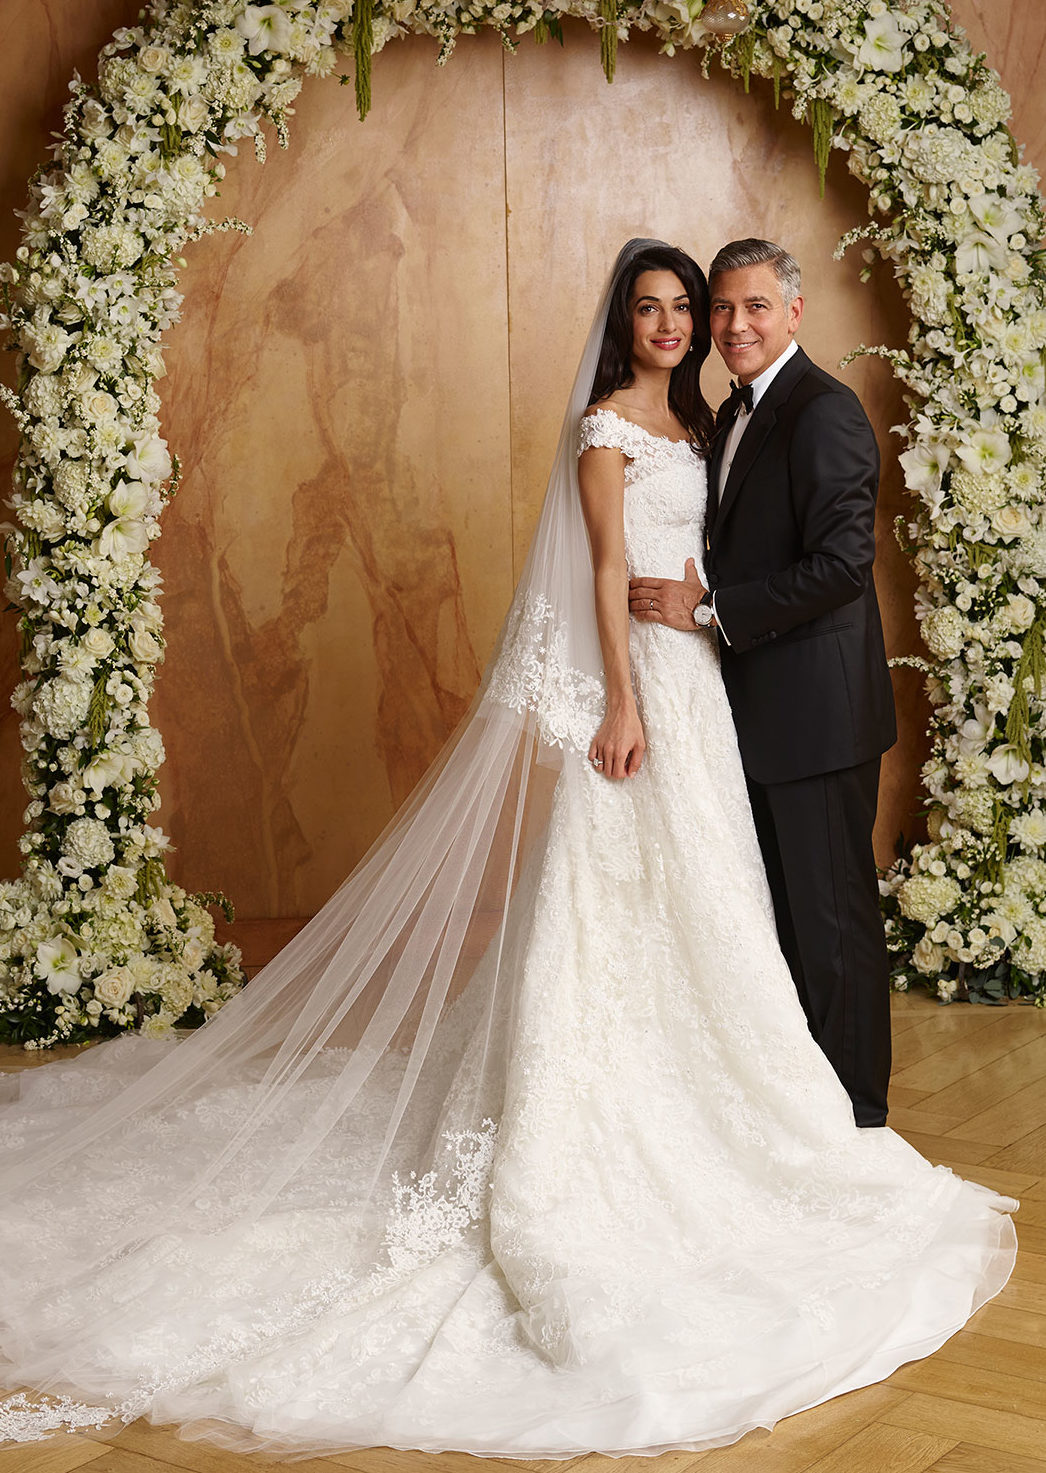 54996353f3446_-_hbz-amal-george-wedding-promo